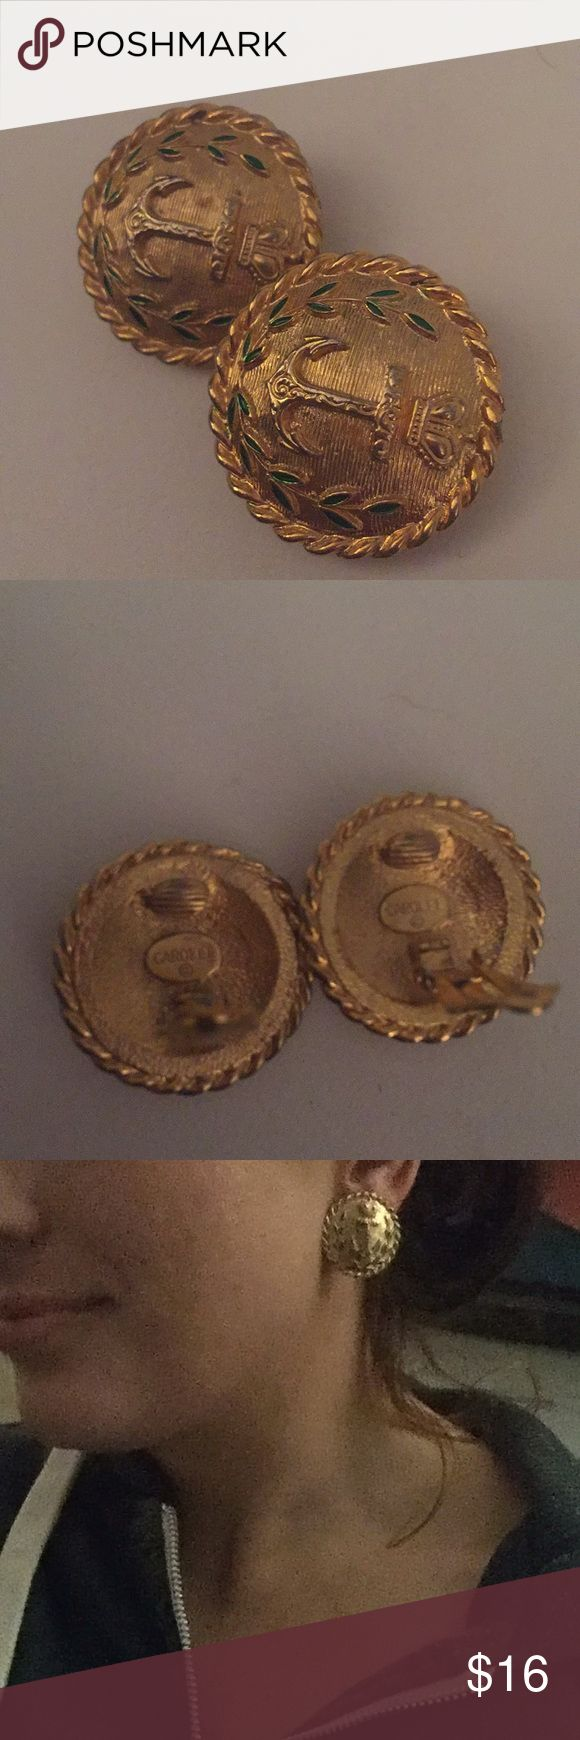 CAROLEE NAUTICAL ANCHOR GOLD COSTUME CLIPPY CLIPS Super cute vintage loud ass Carolee clippys. Totally Ab-Fab type glam.  Twisted rope detail surrounds these large button earrings, with ivy and etching detail framing the large focal anchors. ..lots of detail & volume really make these beauties truly stand out.   Turn a blahhhh dress into 'gurllllll😍' with these clutch clip on earrings by the one and only NYC designer Carolee.  Purchased at Bloomingdales in Manhattan in the early 2000s…